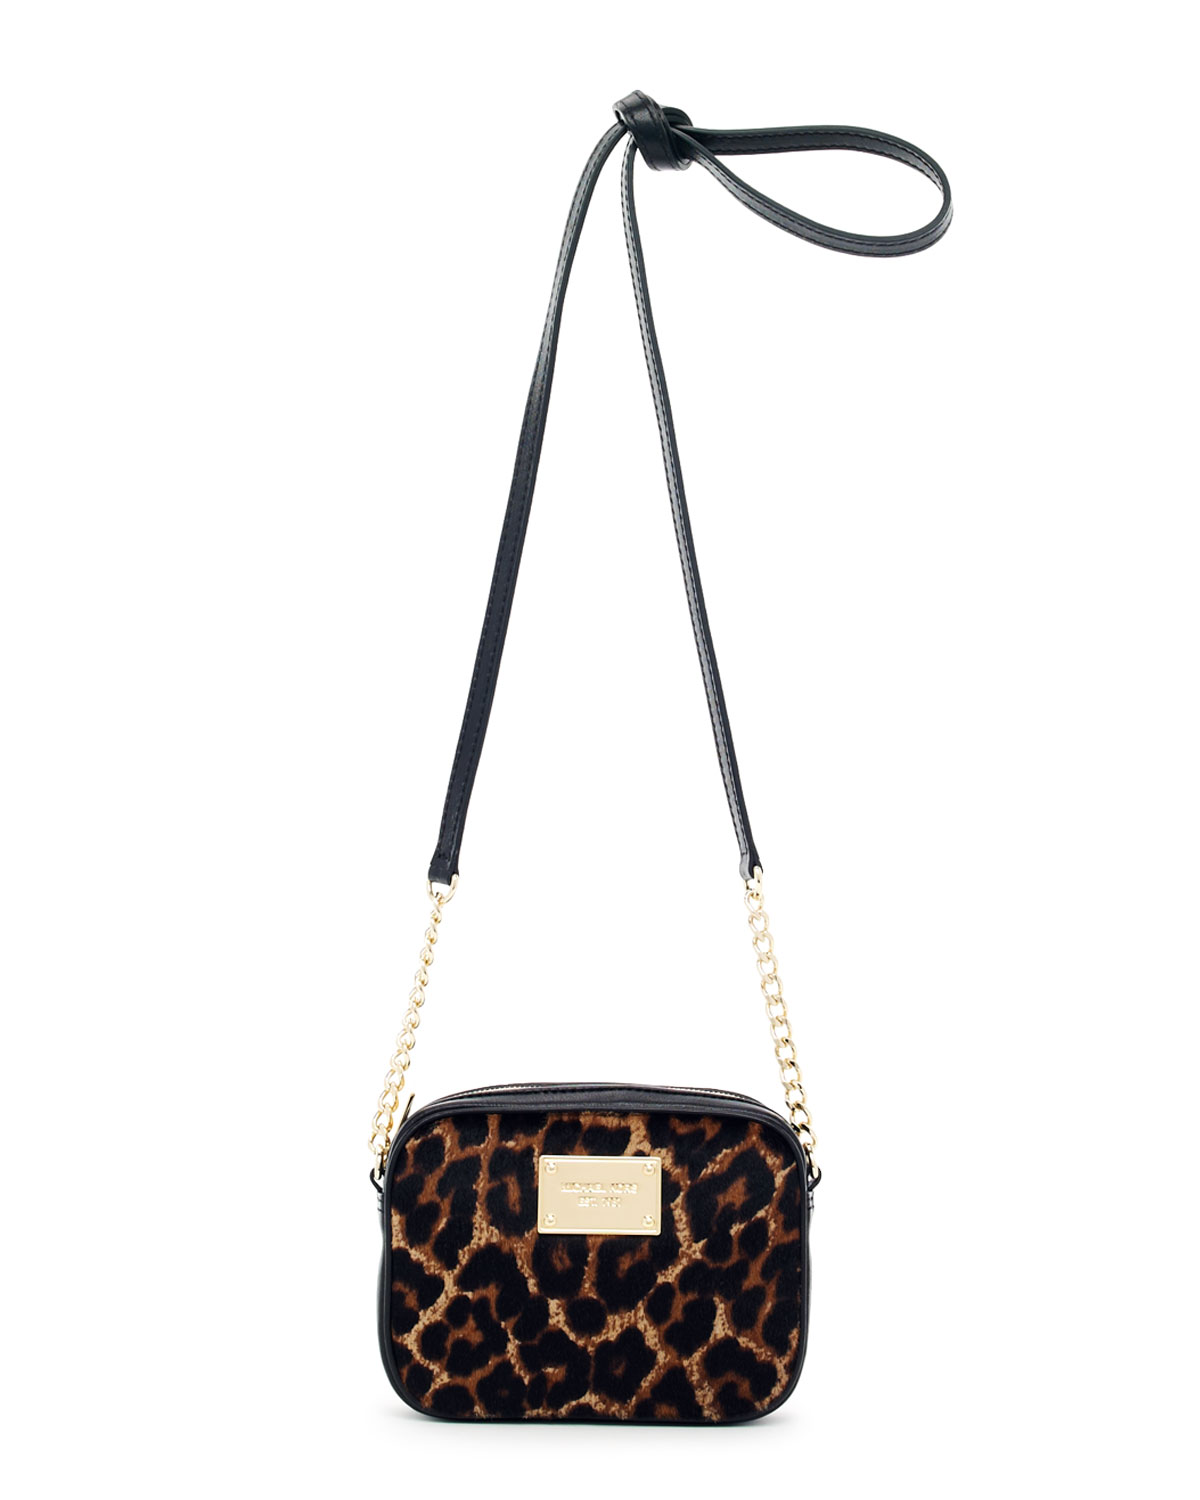 f216f48a9bb3 Michael Kors Jet Set Crossbody Leopard - Best Image Of Leopard ...